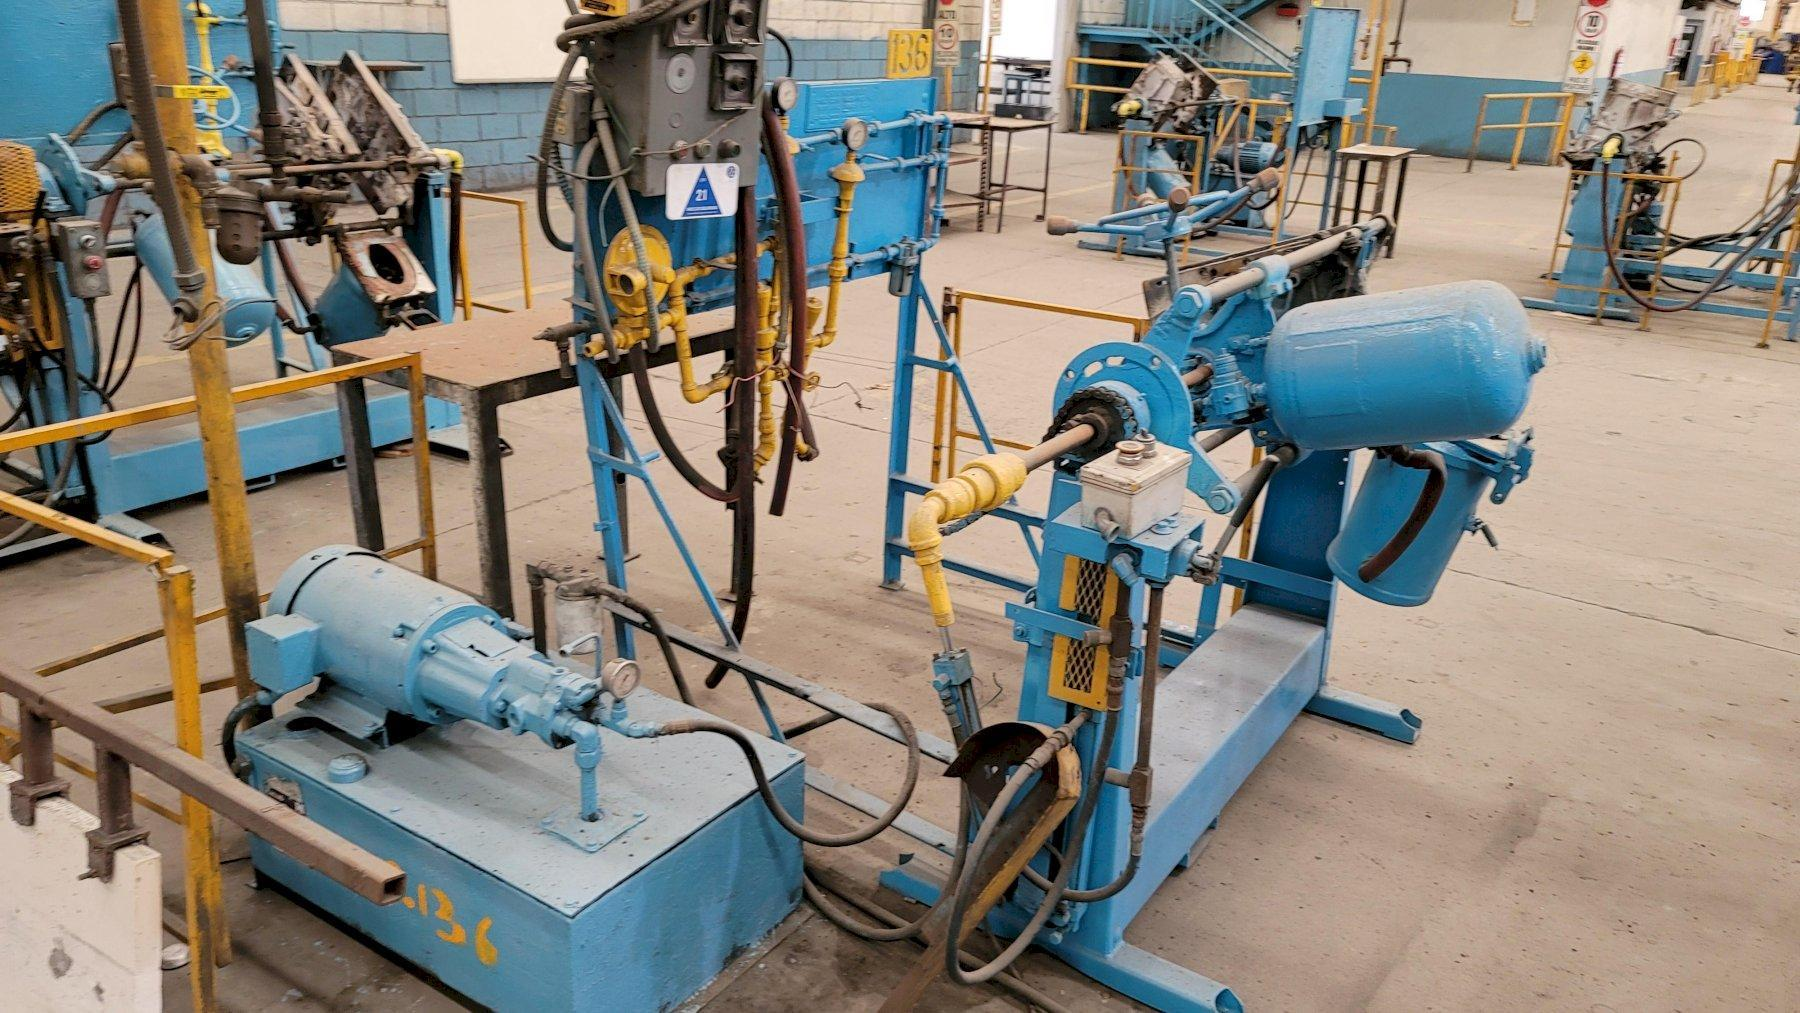 Dependable model 200sa shell core machine s/n 923 with gas panel and hydraulic